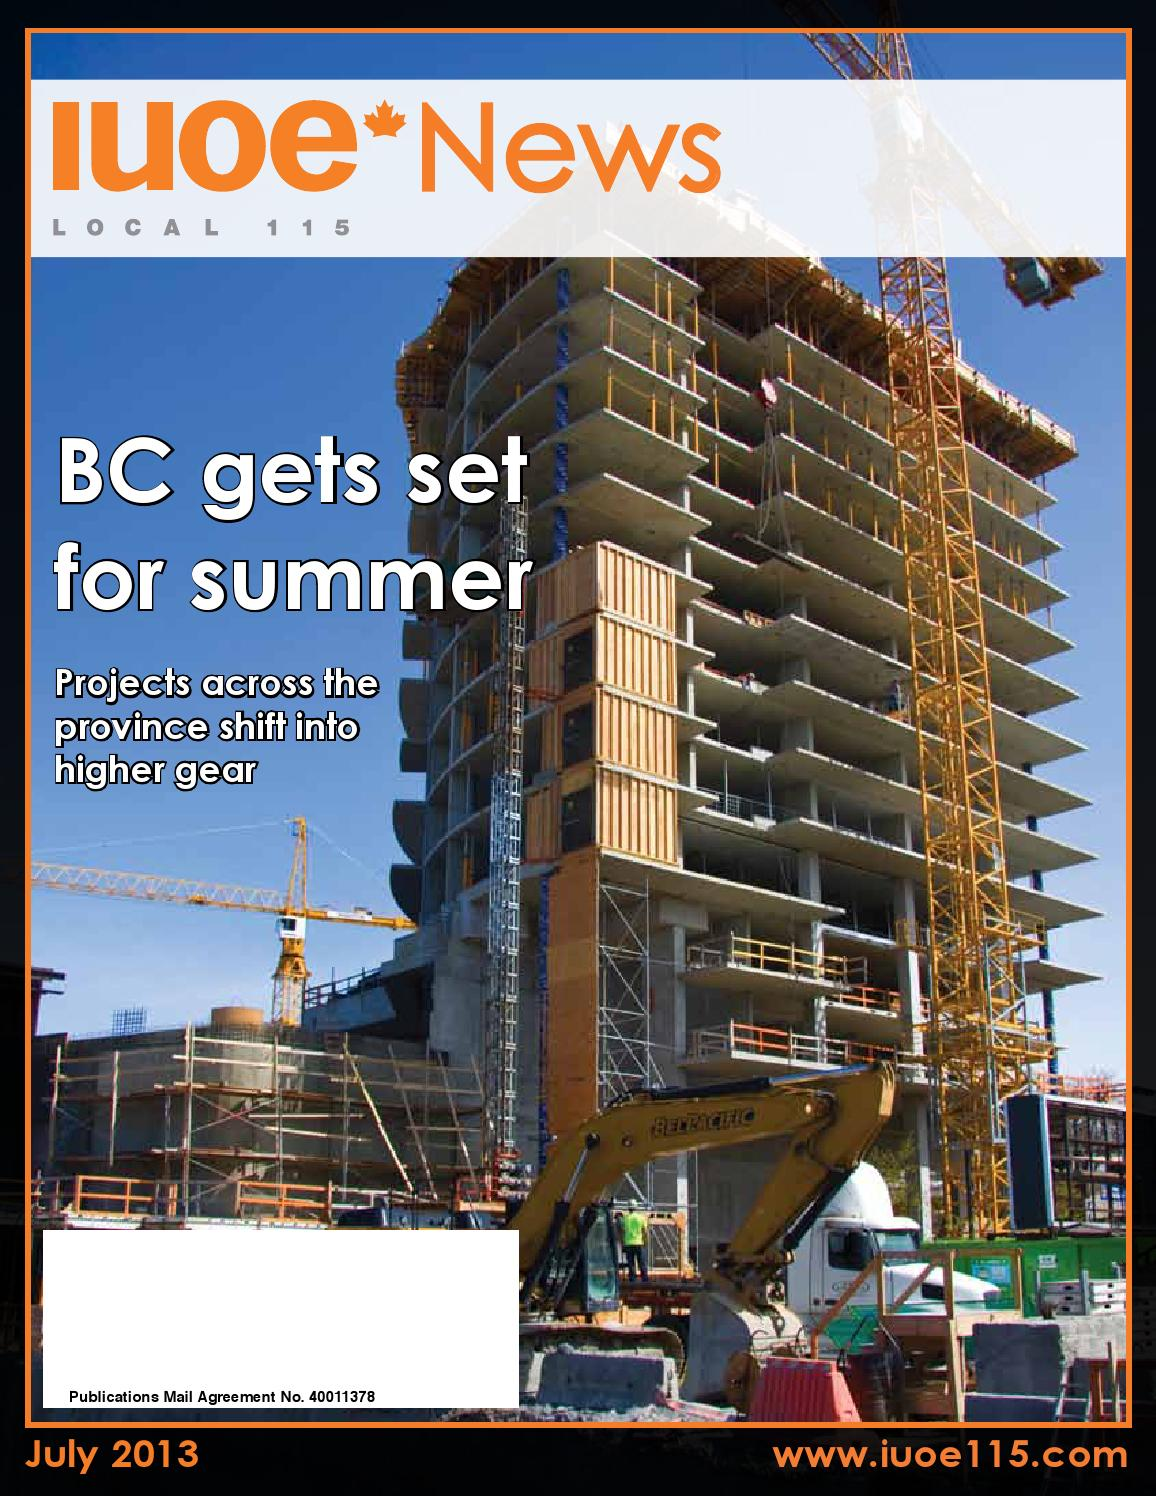 IUOE News July 2013 by Kevin Willemse - issuu